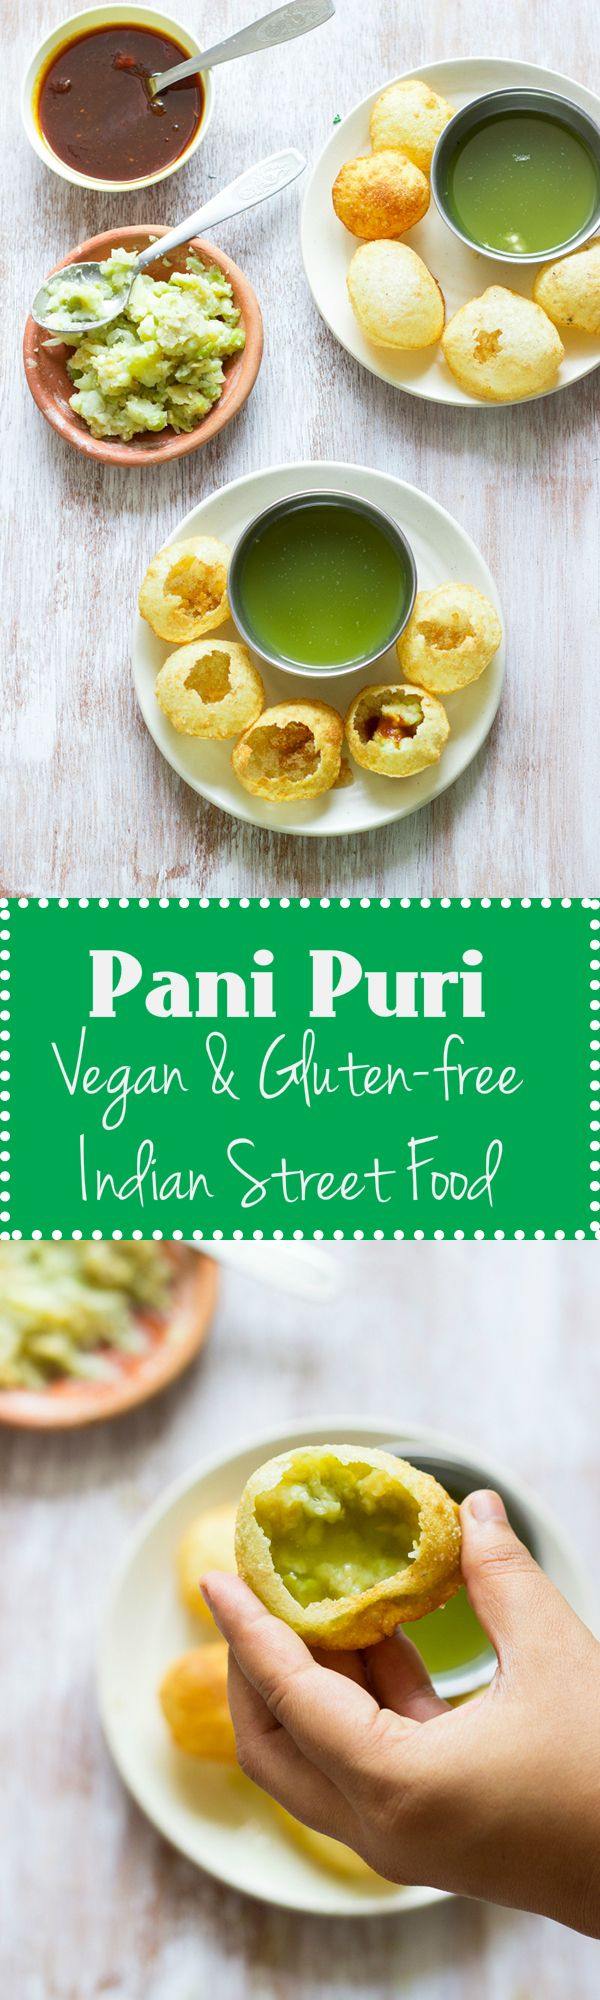 Pani Puri / Golgappa / Puchka is a popular Indian street food made by stuffing crispy dough balls with mashed potato and a spicy mint coriander water. Vegan and Gluten Free.